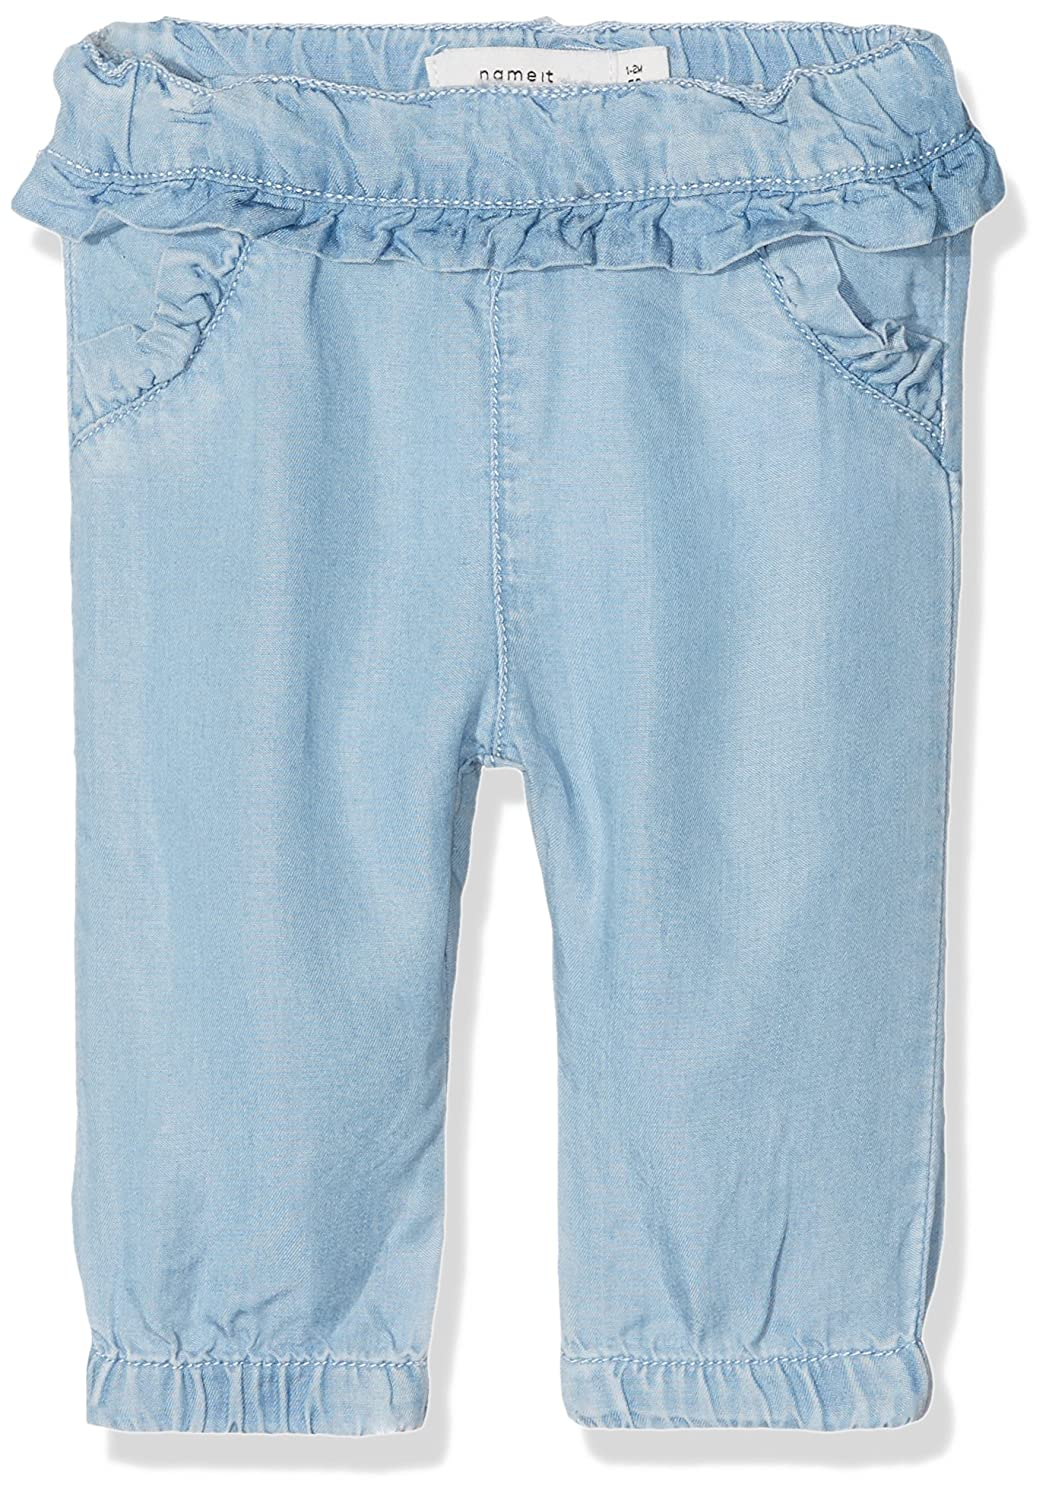 NAME IT Baby-Mädchen Jeans 13153335